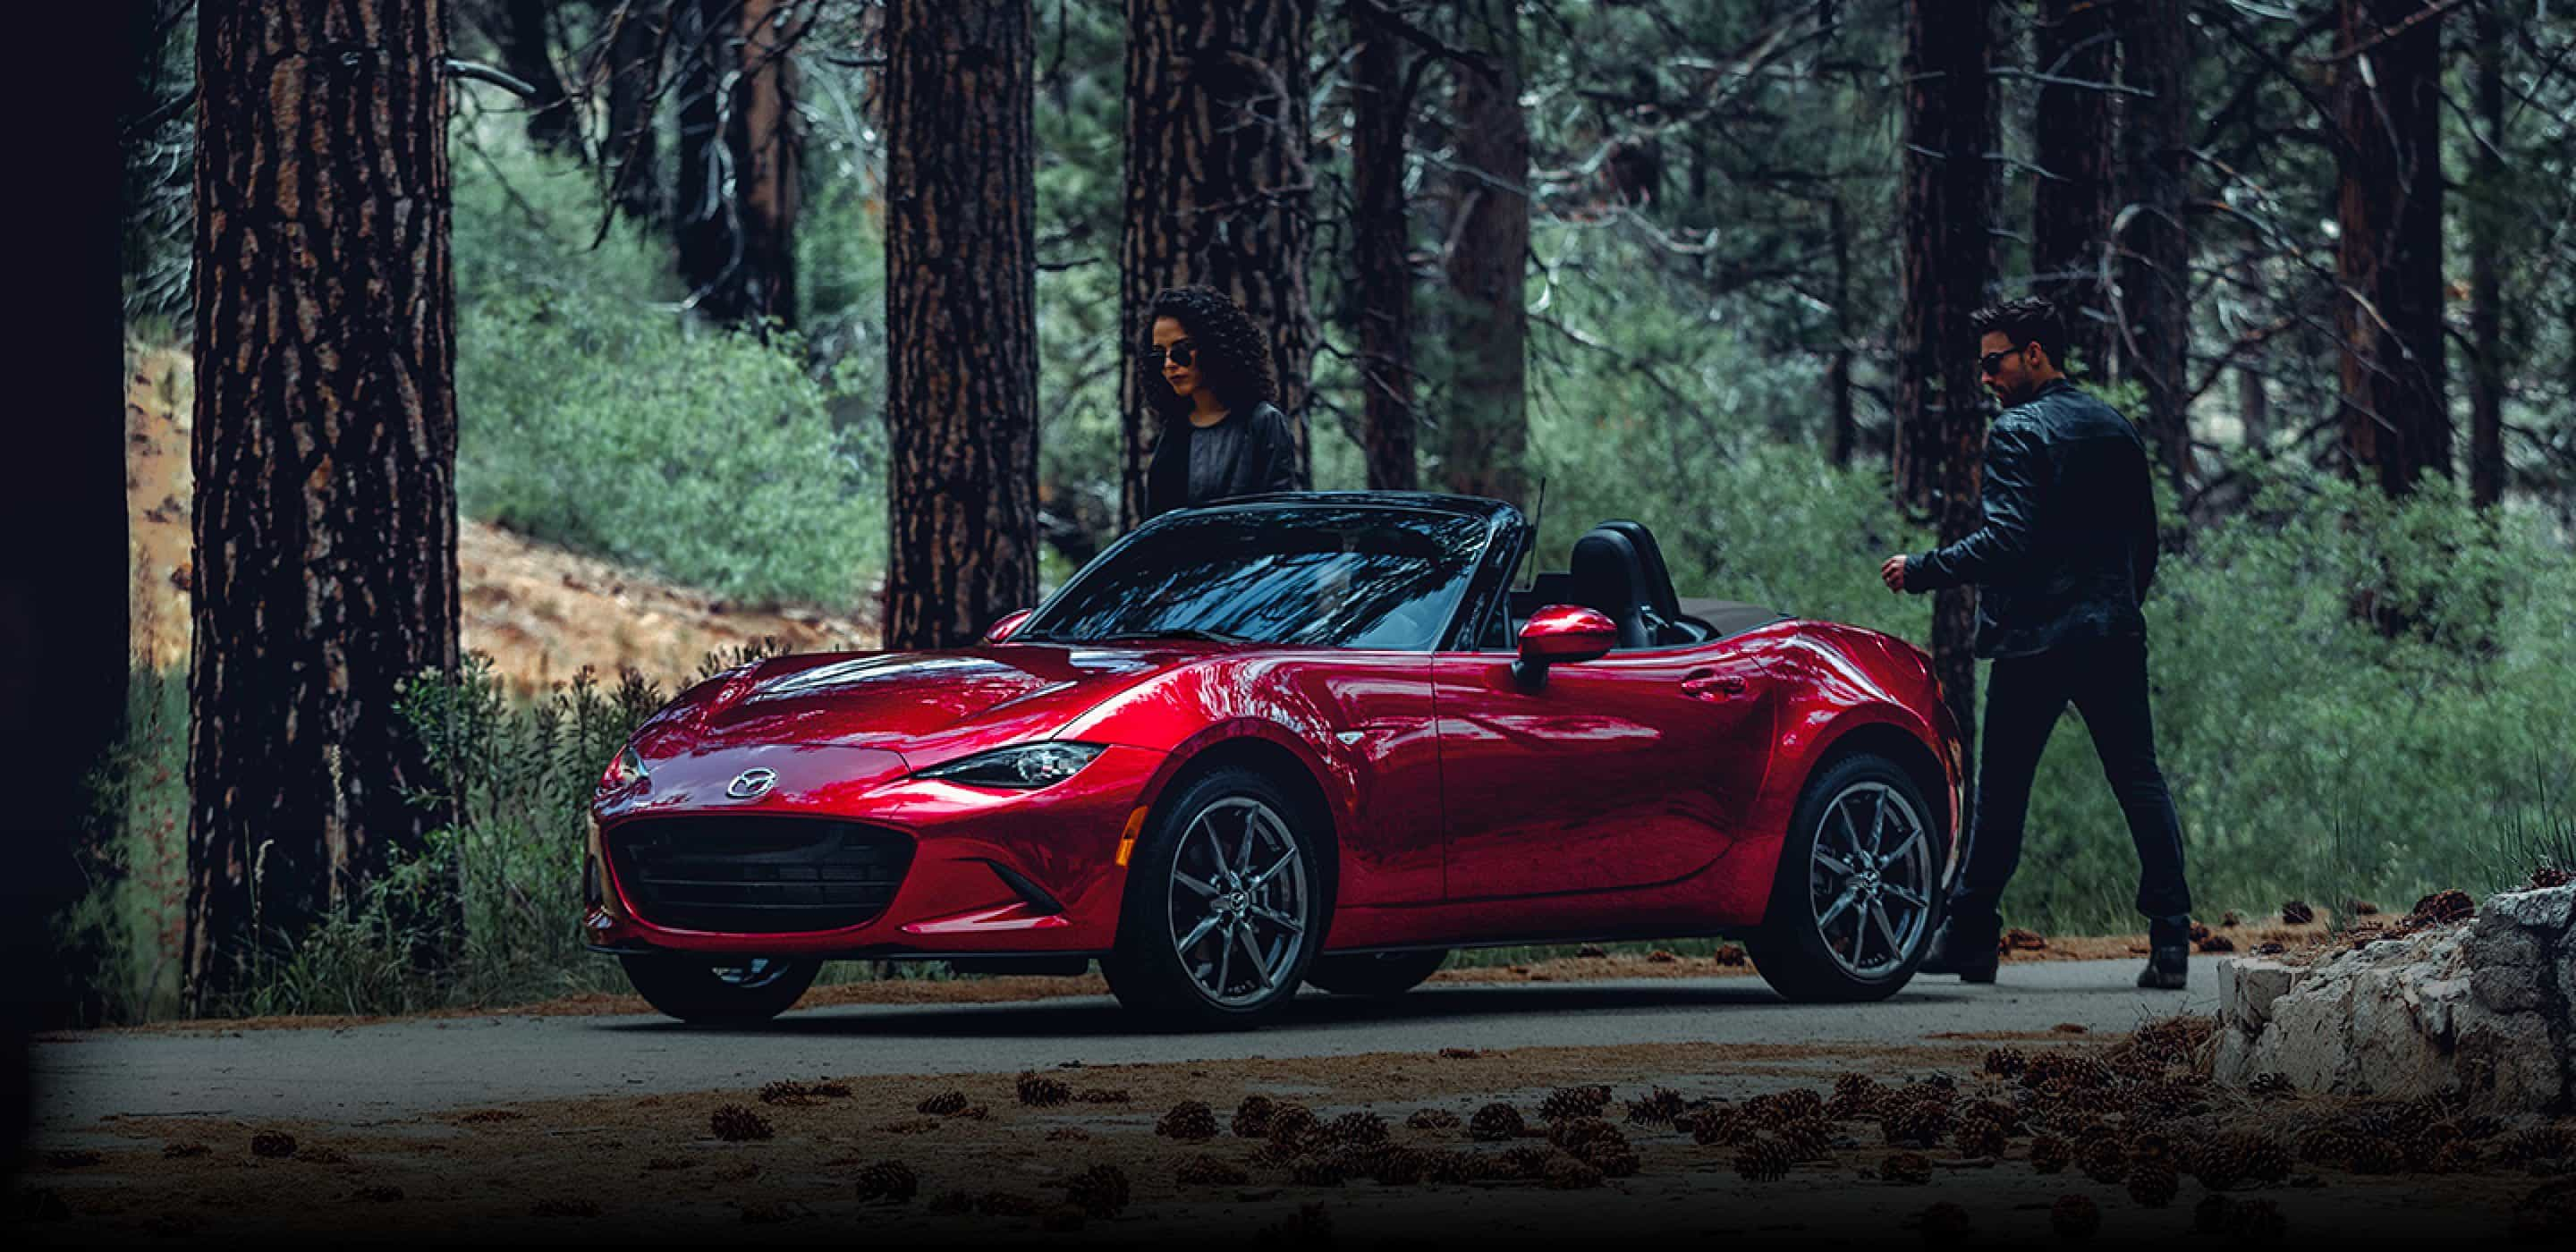 2020 MX-5 MIATA, The Legend Only Grows